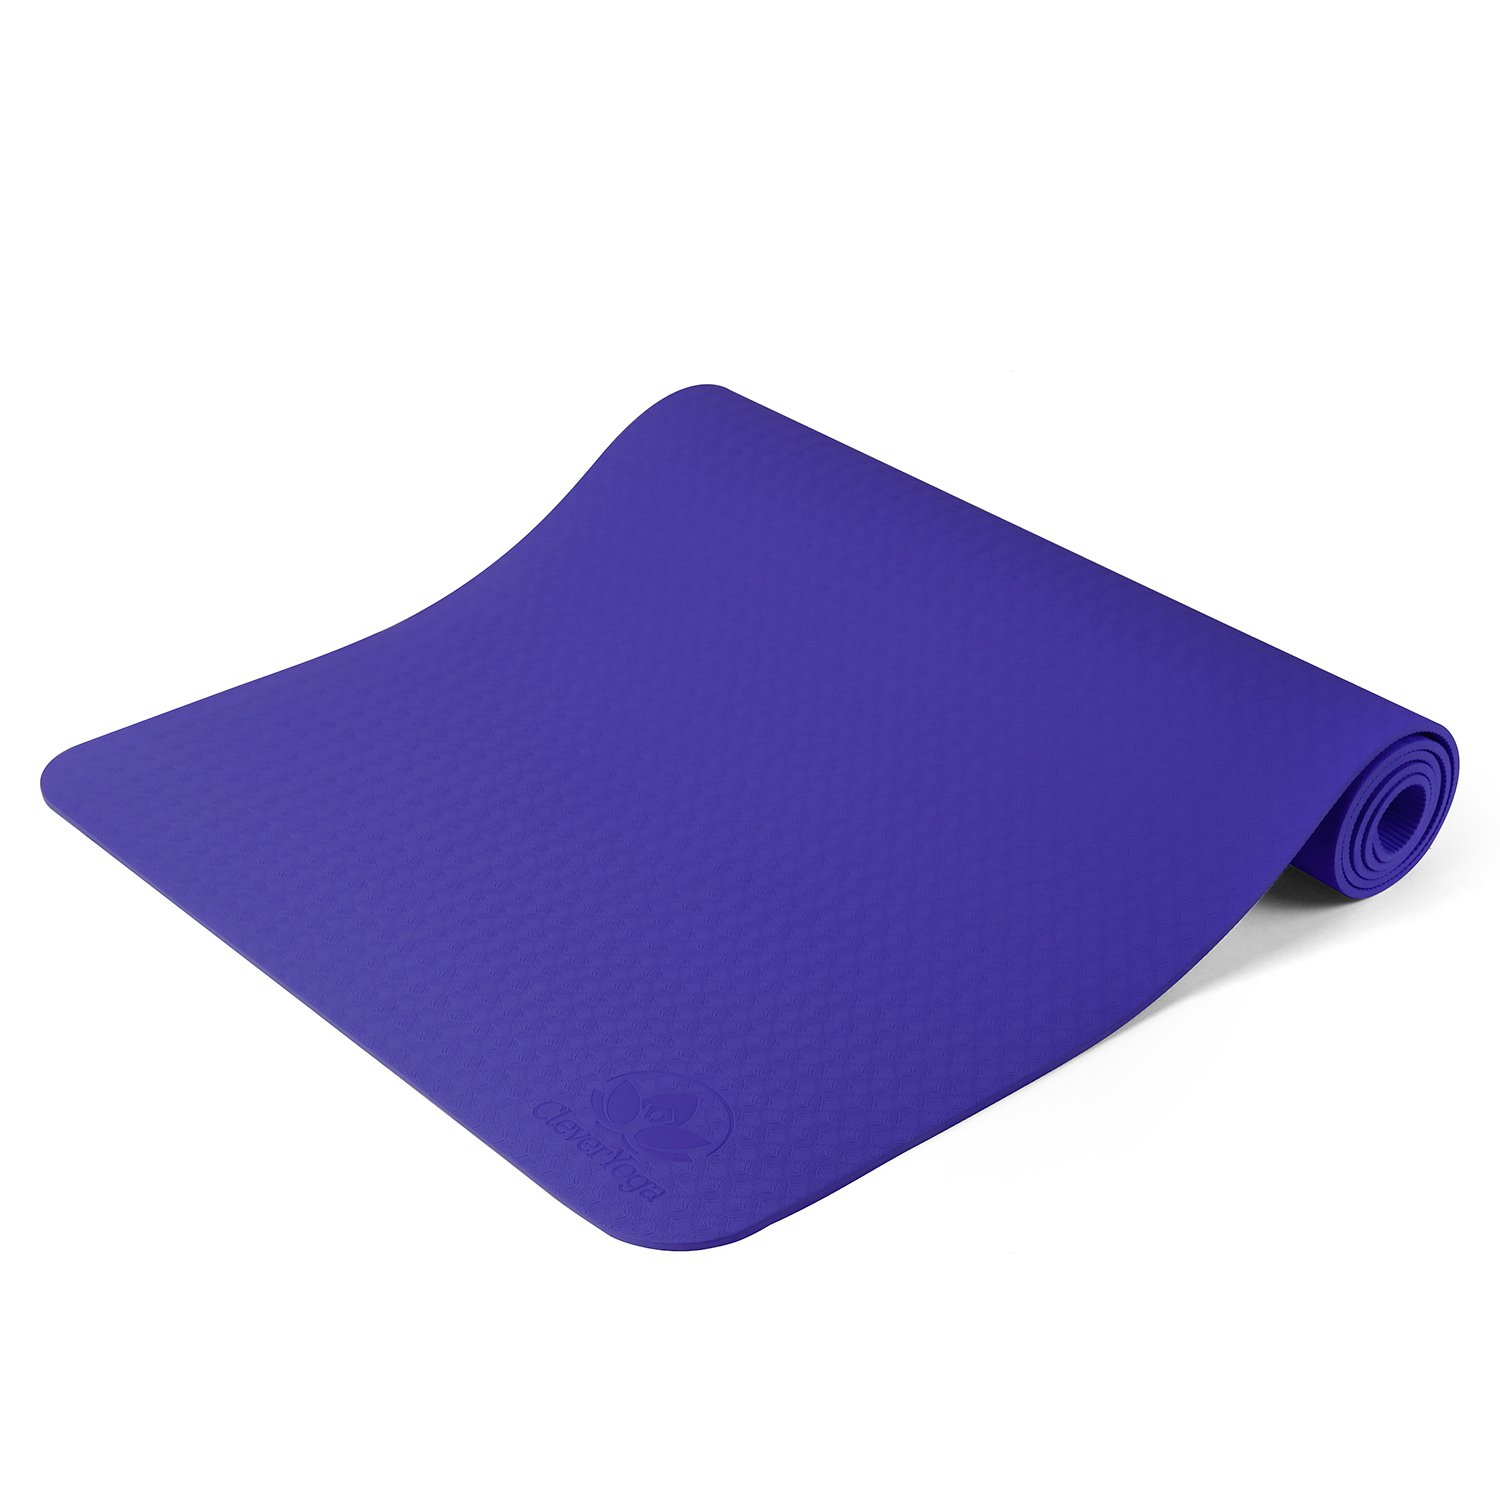 quality mats yogdev best yoga pink premium product mat pvc wheels and the by